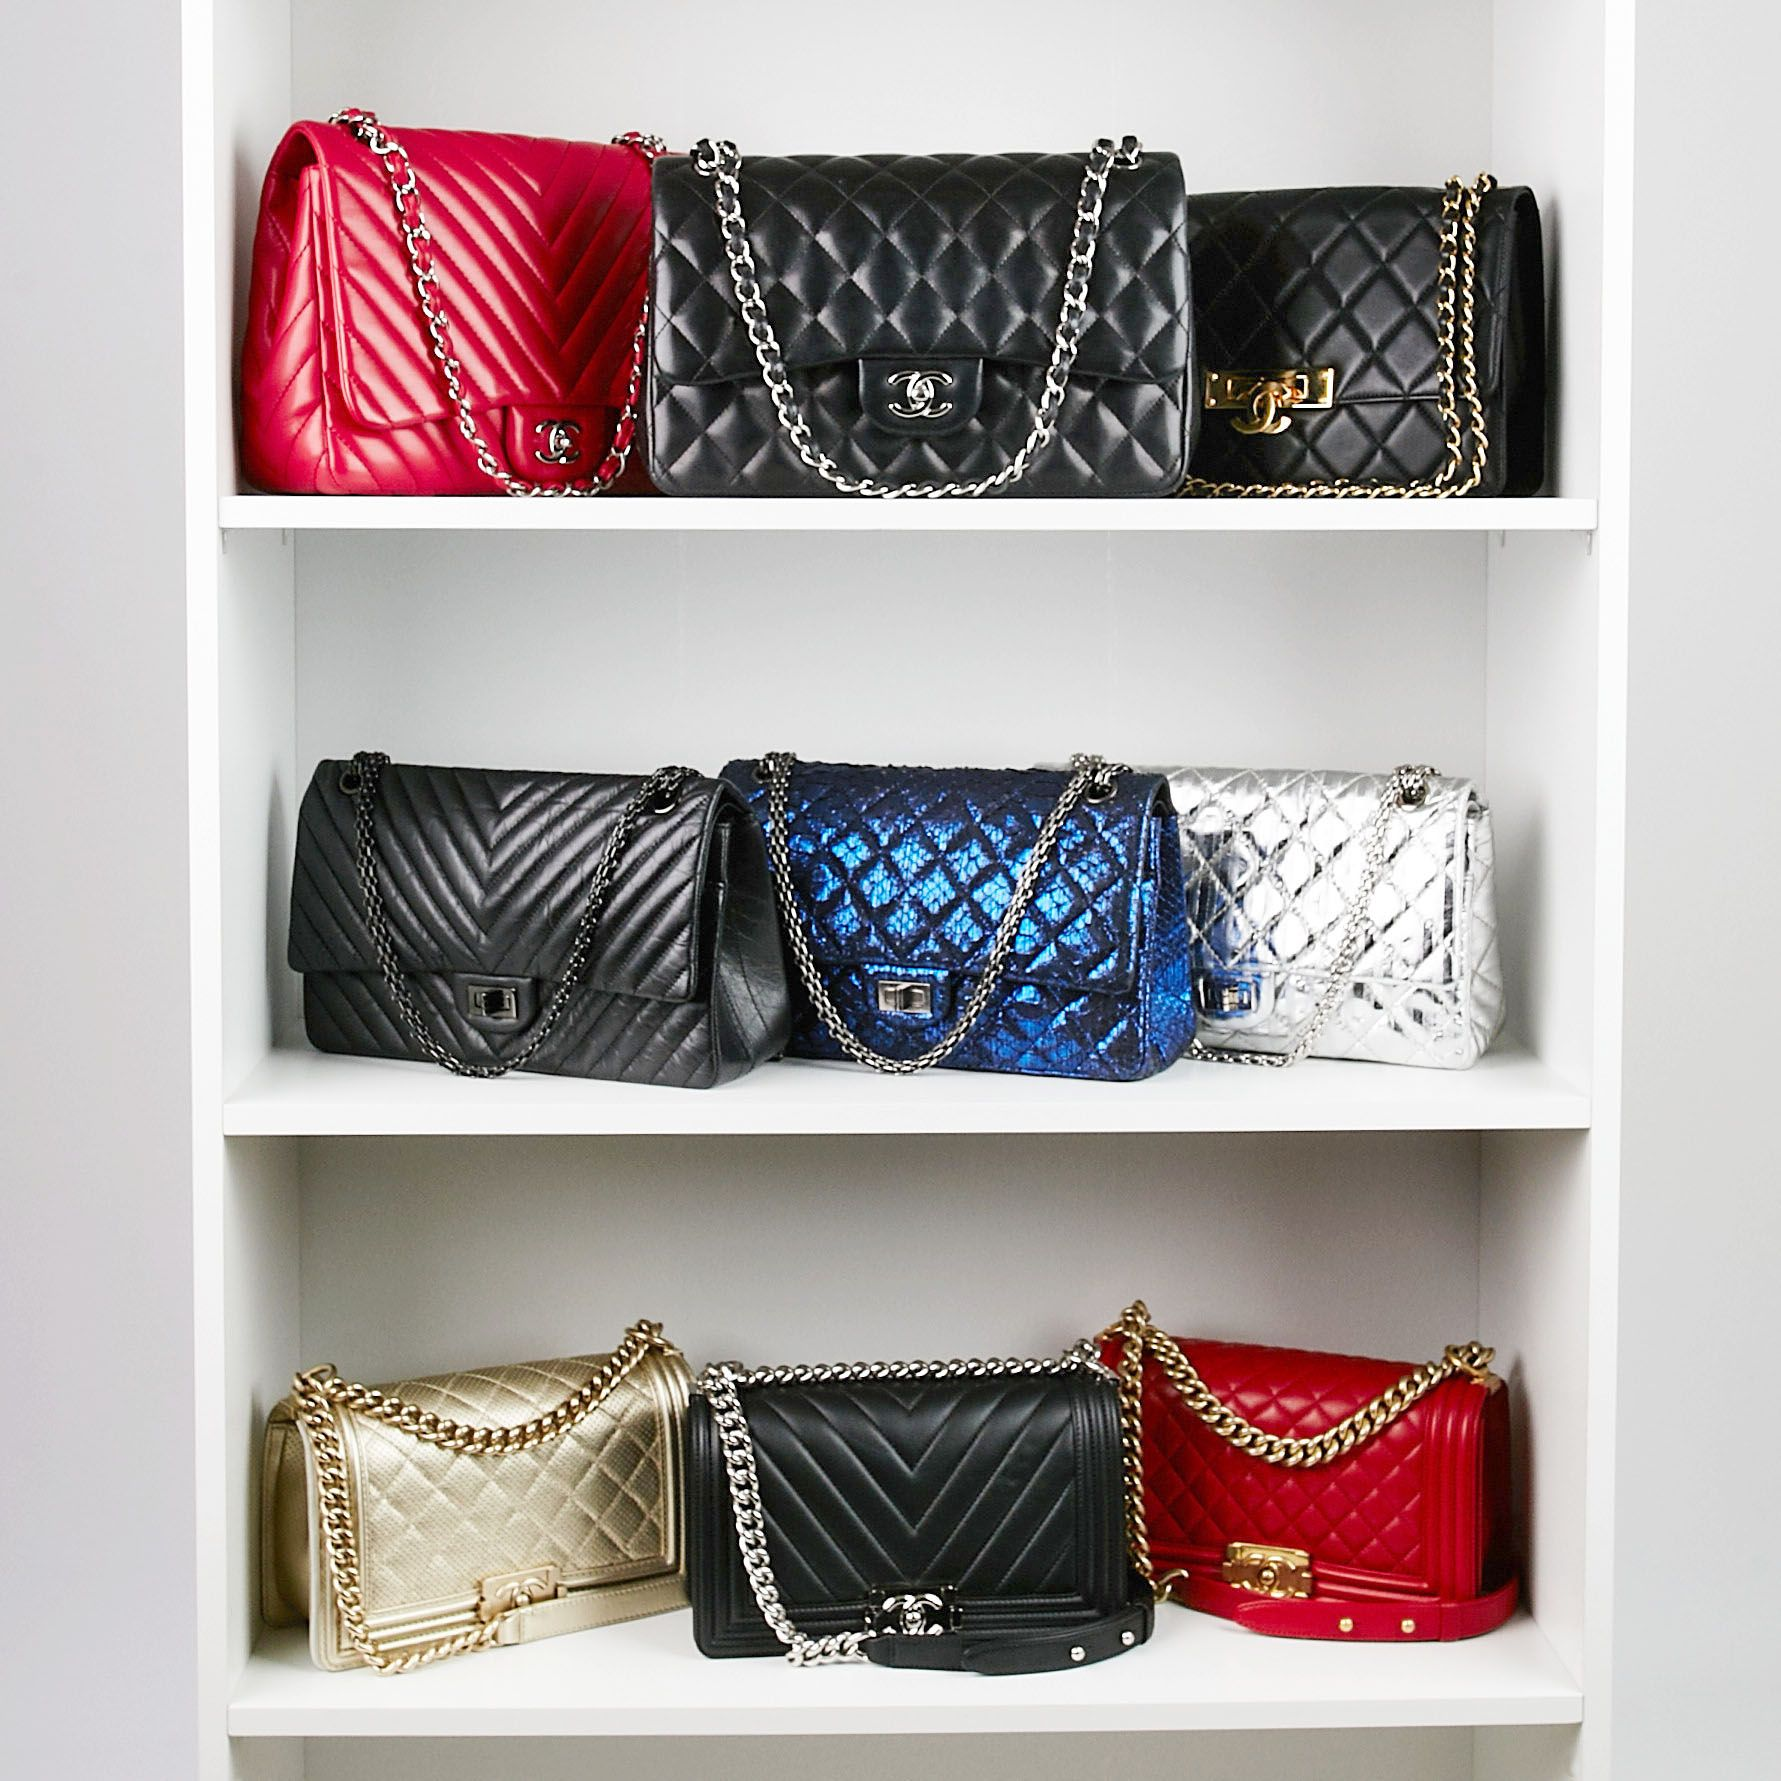 9c3eed59386a A fashion lover's dream come true; a closet full of Chanel! - Yoogi's Closet  | #Chanel